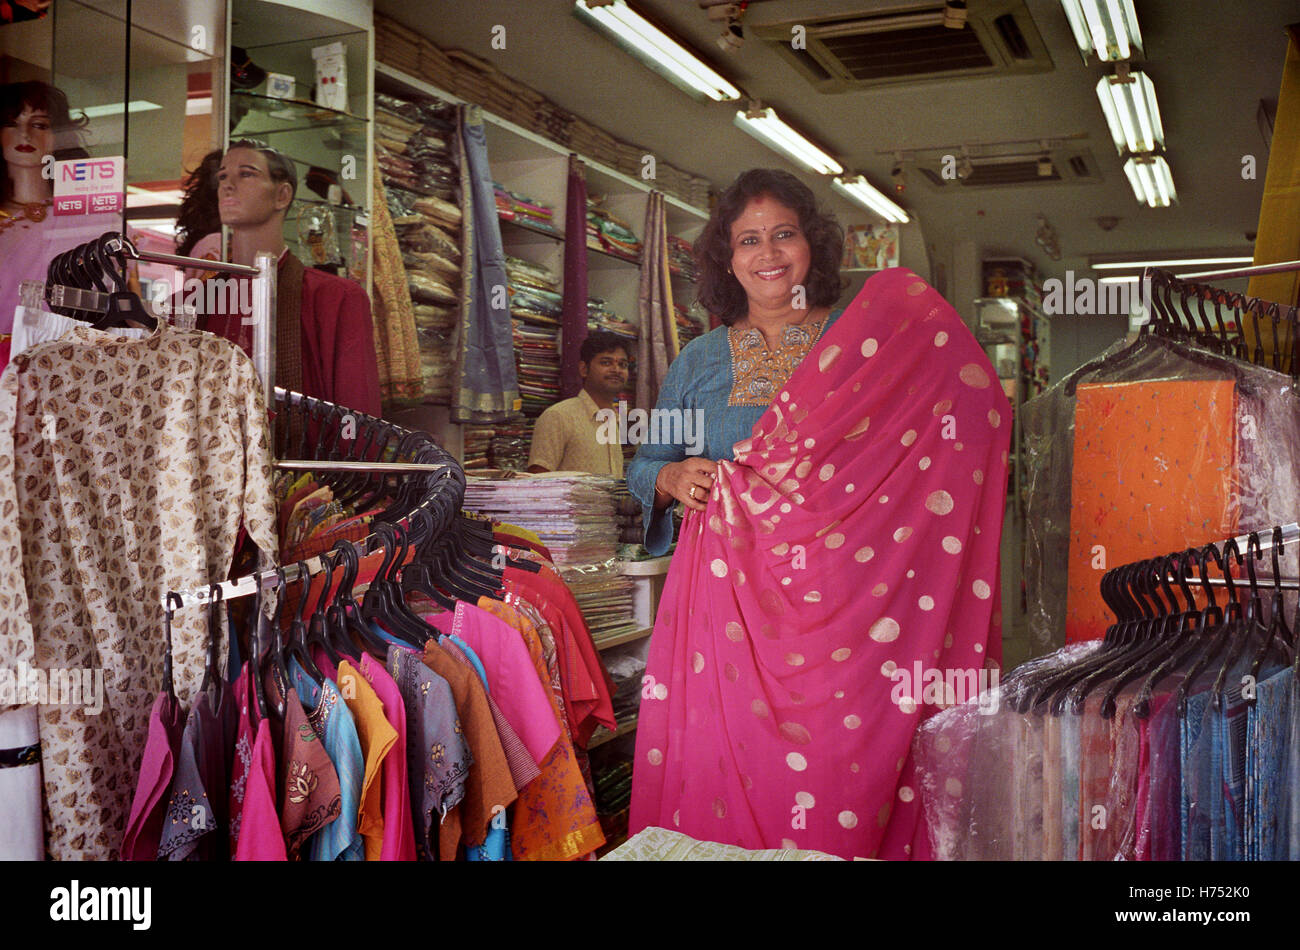 4b885e44d3 Indian Lady Proprietor in Fabrics Store Little India Singapore - Stock Image